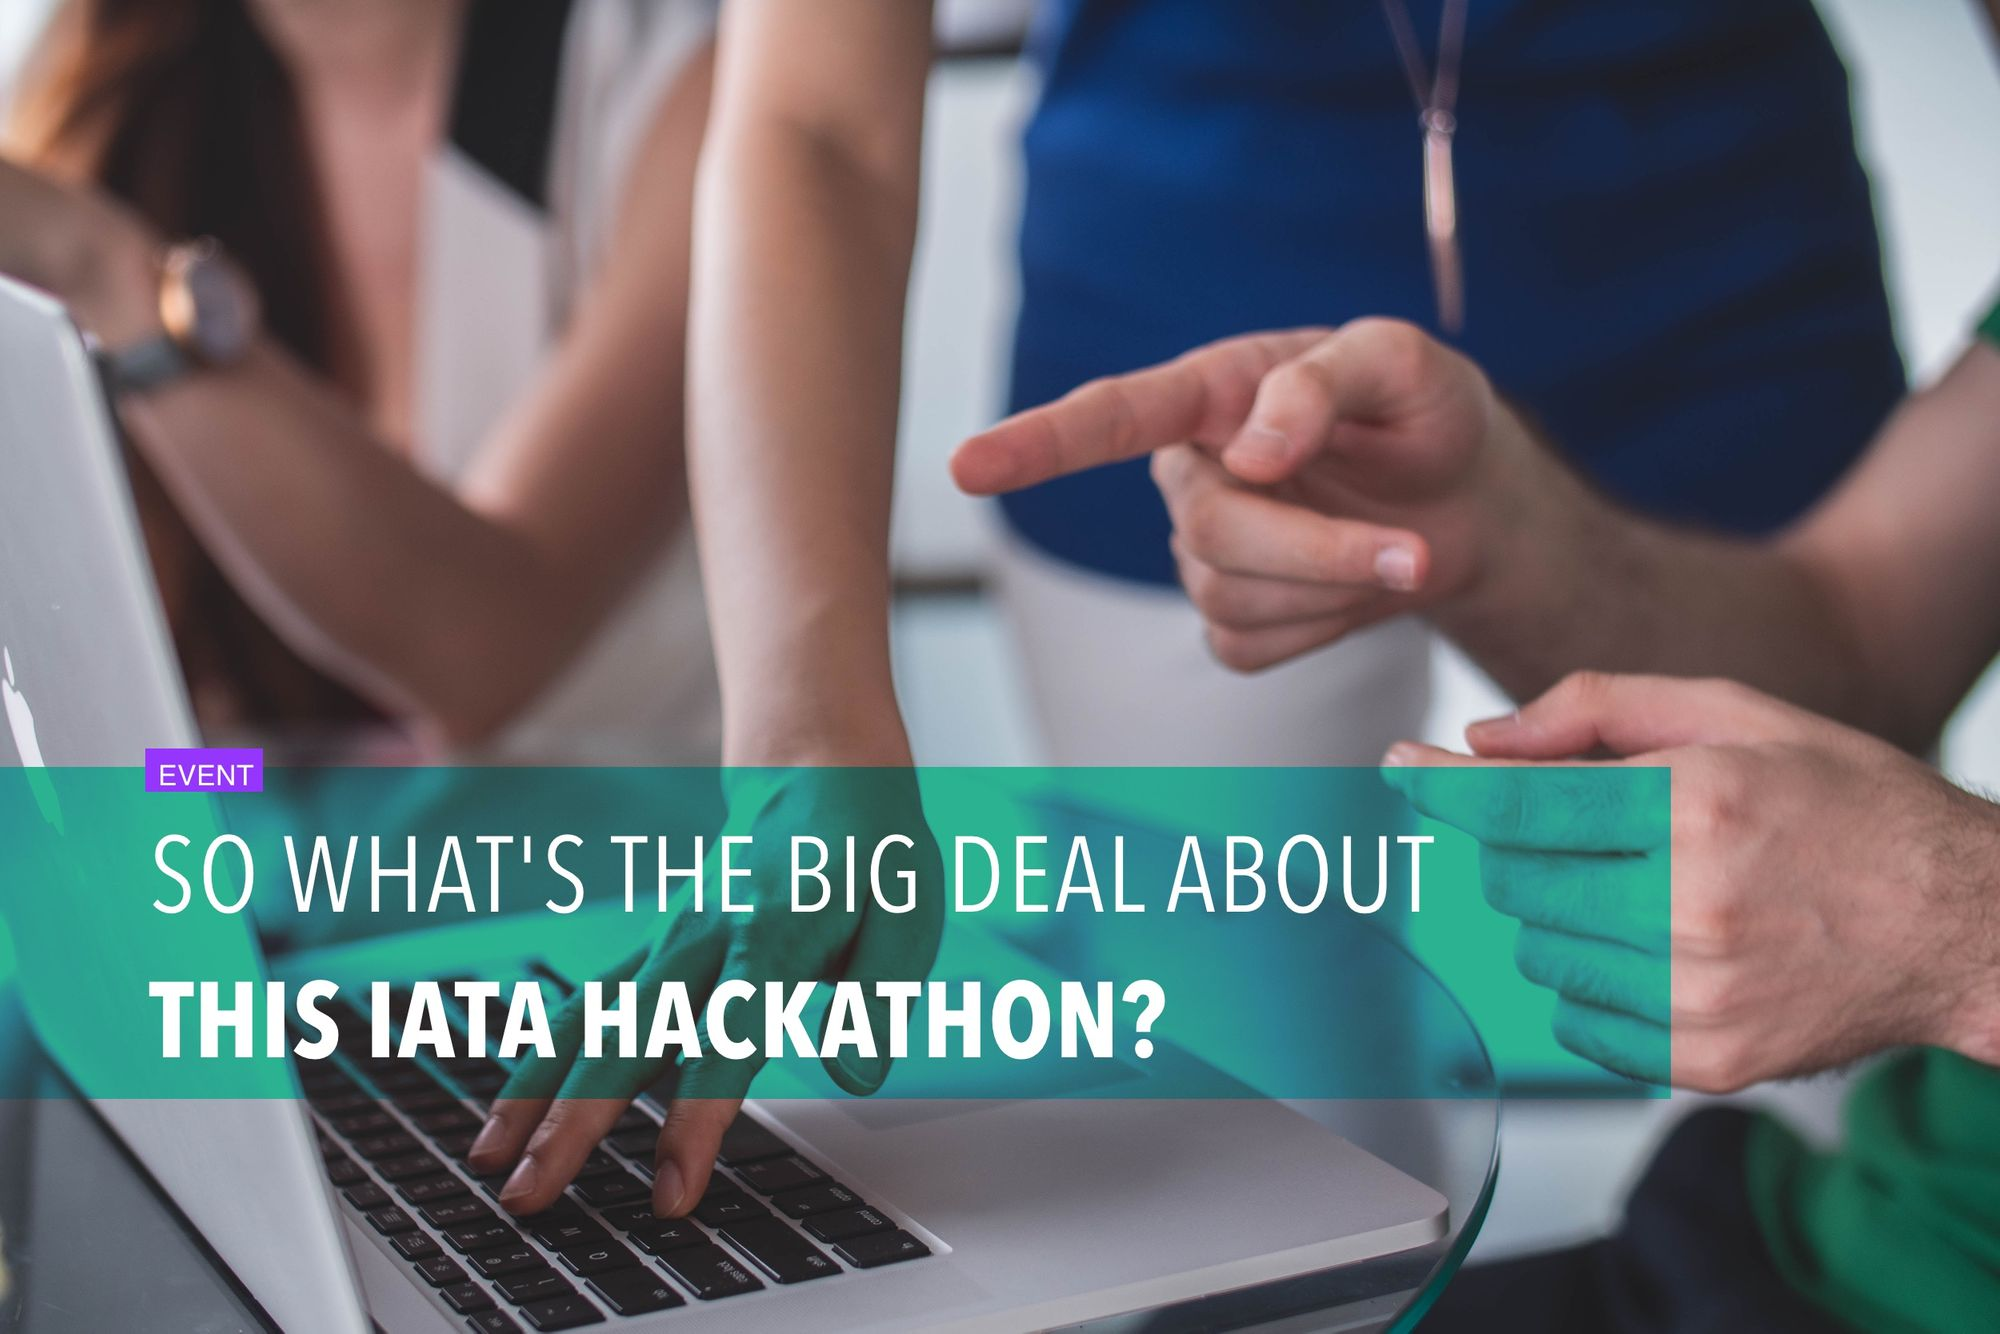 So what's the big deal about this IATA hackathon?